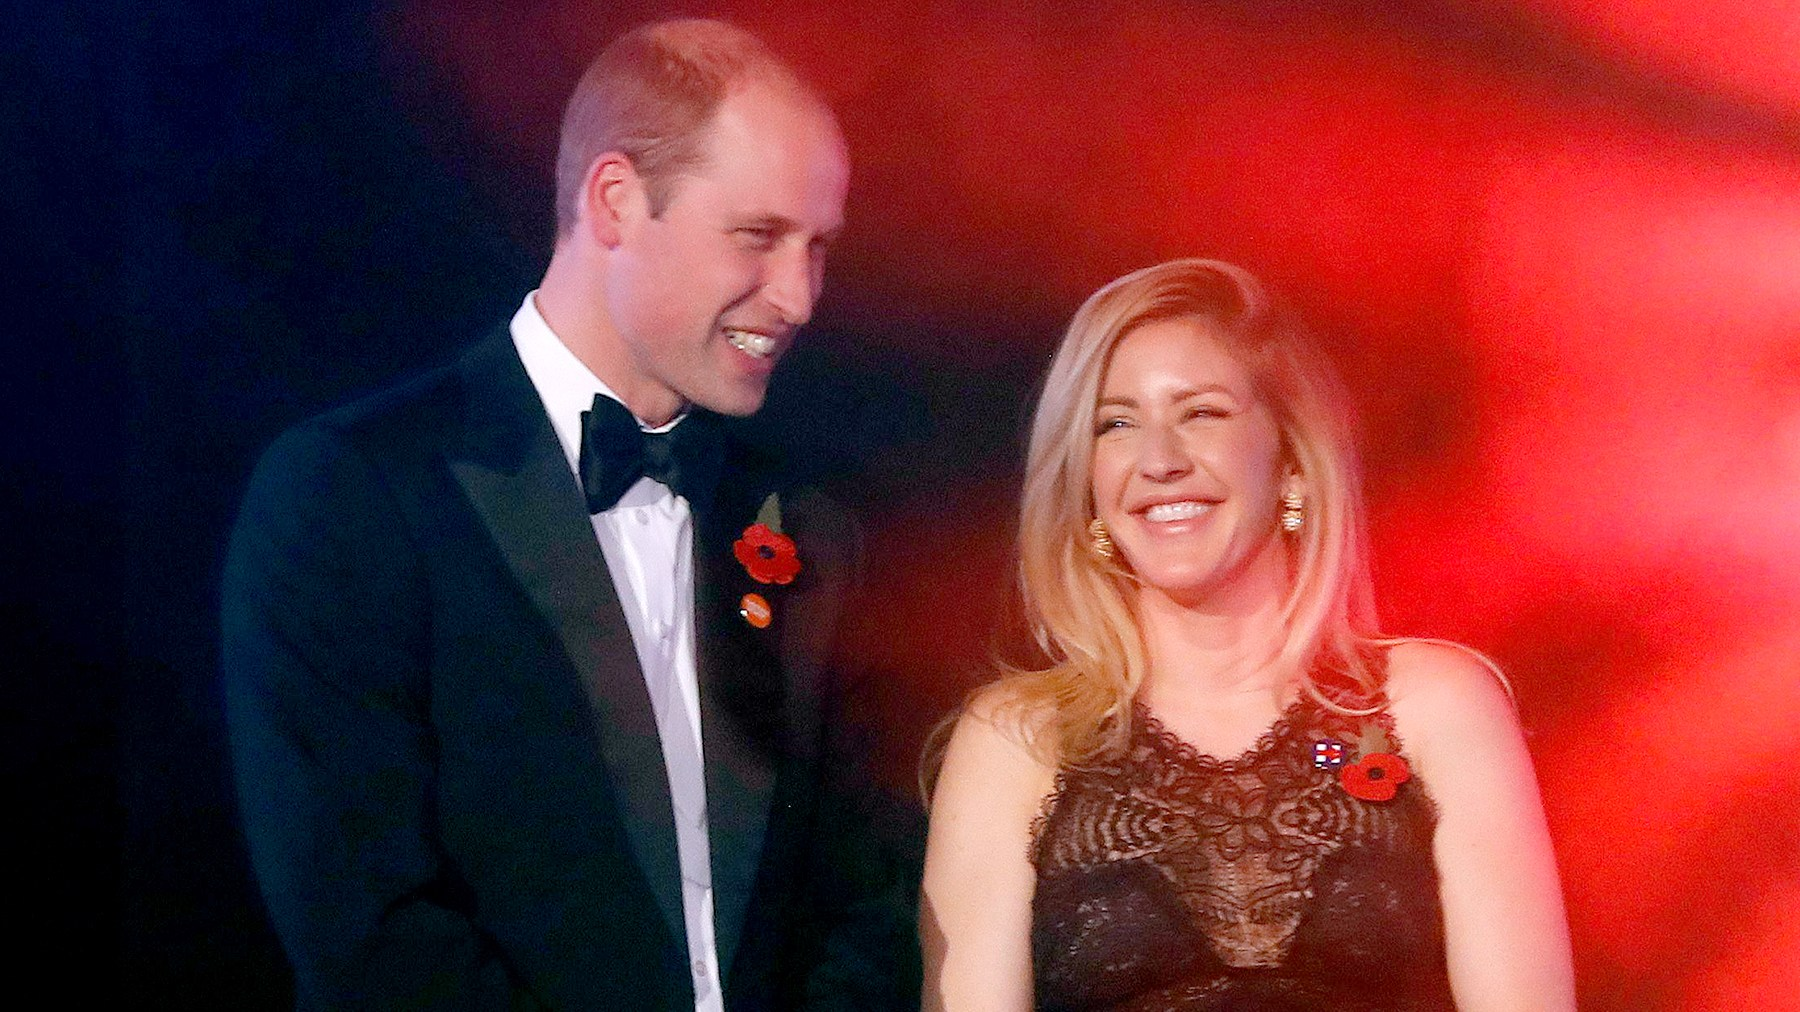 Britain's Prince William (L), The Duke of Cambridge speaks to British singer-songwriter Ellie Goulding (R) as they attend Centrepoint at the Palace, a fundraising event in the grounds of Kensington Palace in London on November 10, 2016 in aid of youth homeless charity Centrepoint.